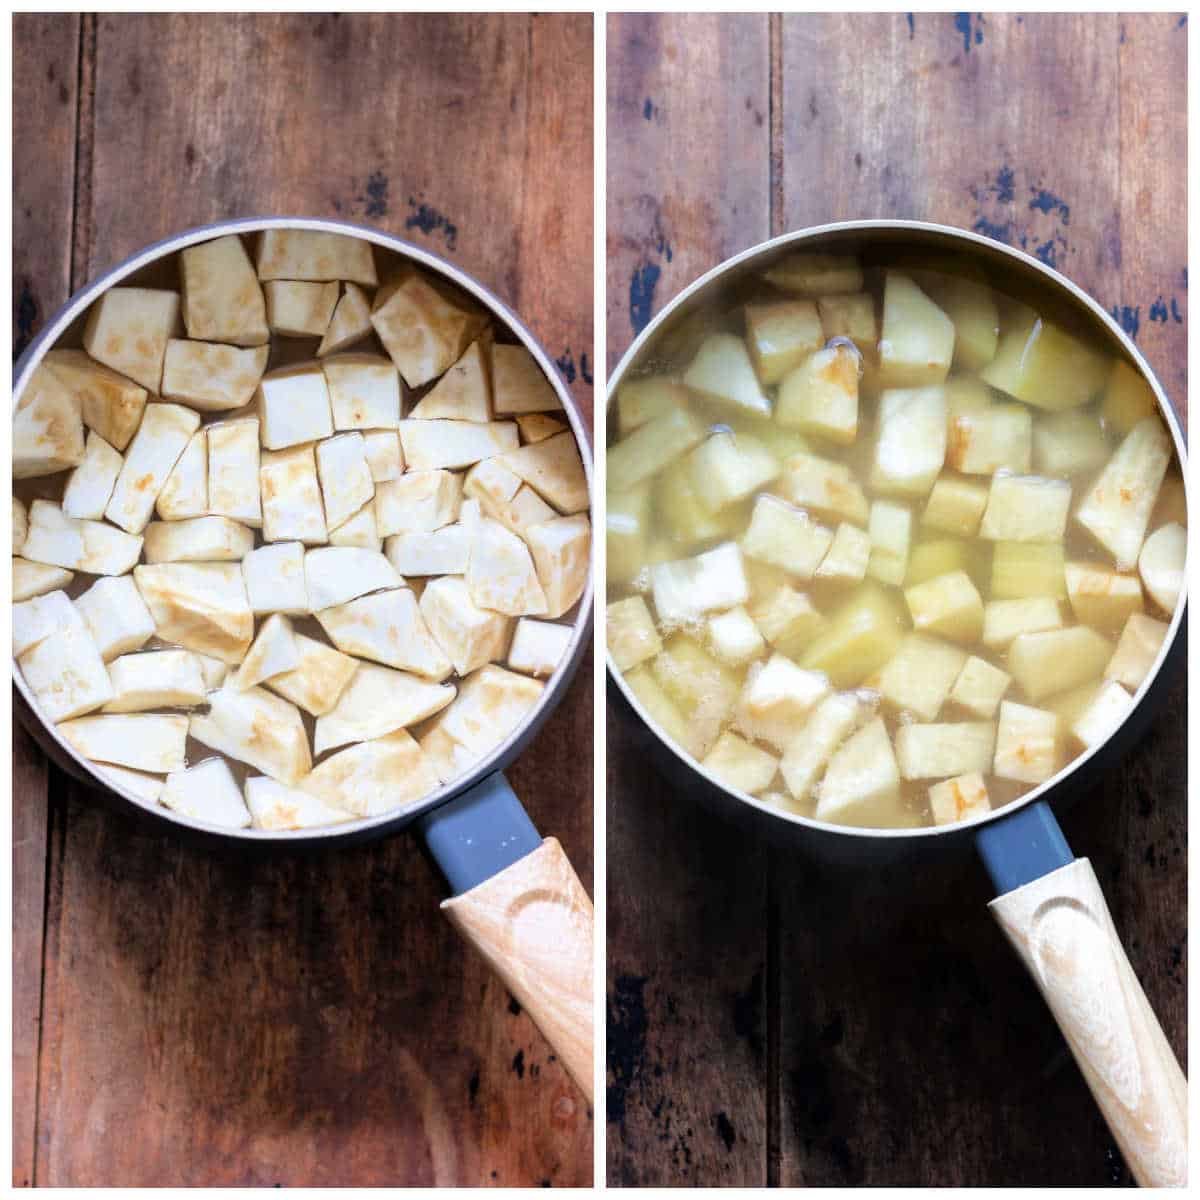 Pot of celeriac and pot with potatoes included too.